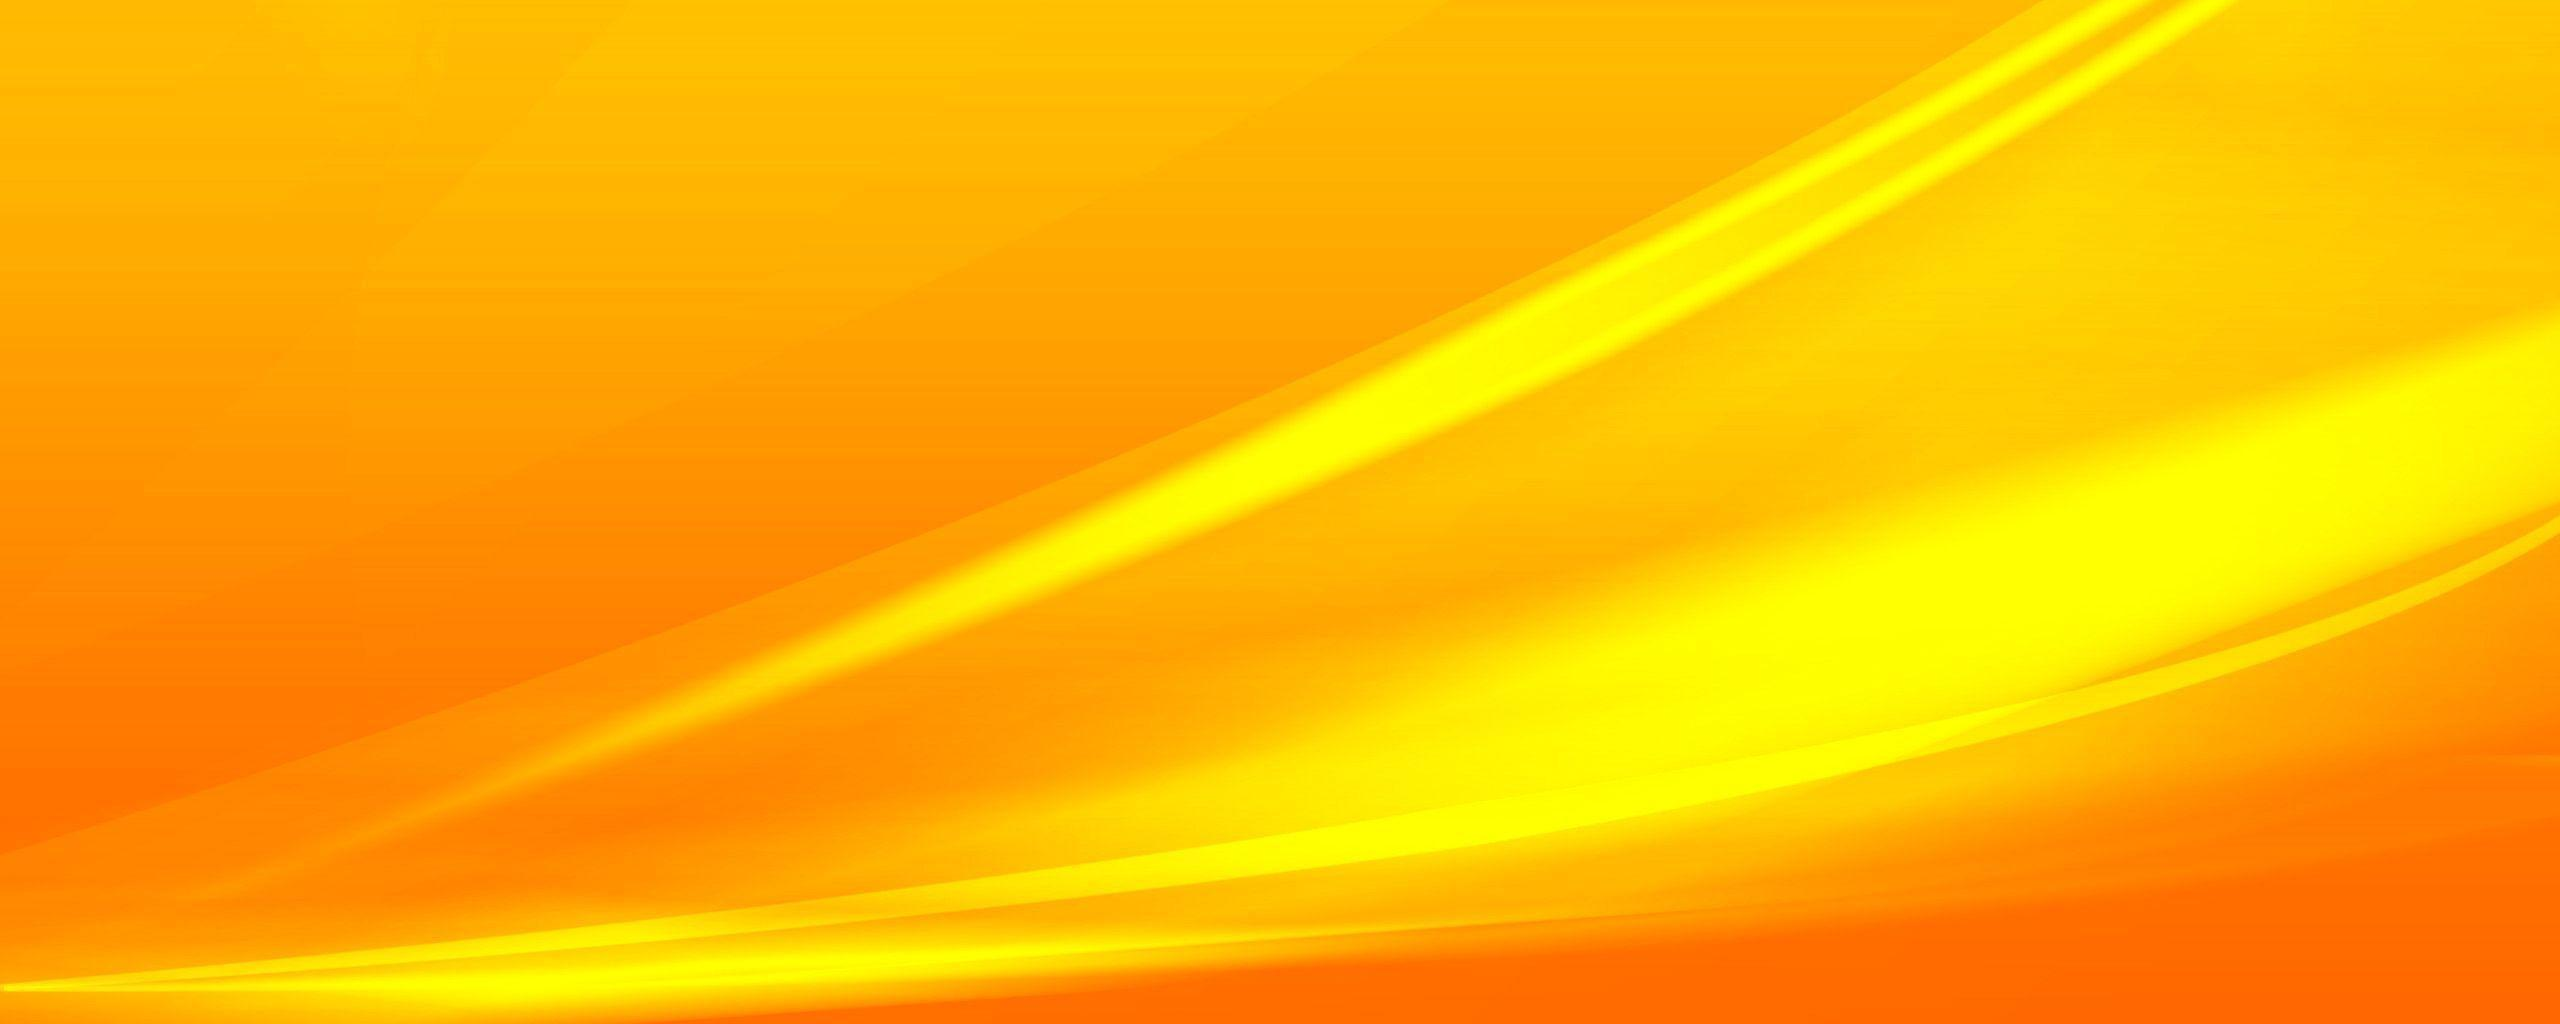 Yellow Abstract Backgrounds Yellow Backgrounds Ima...